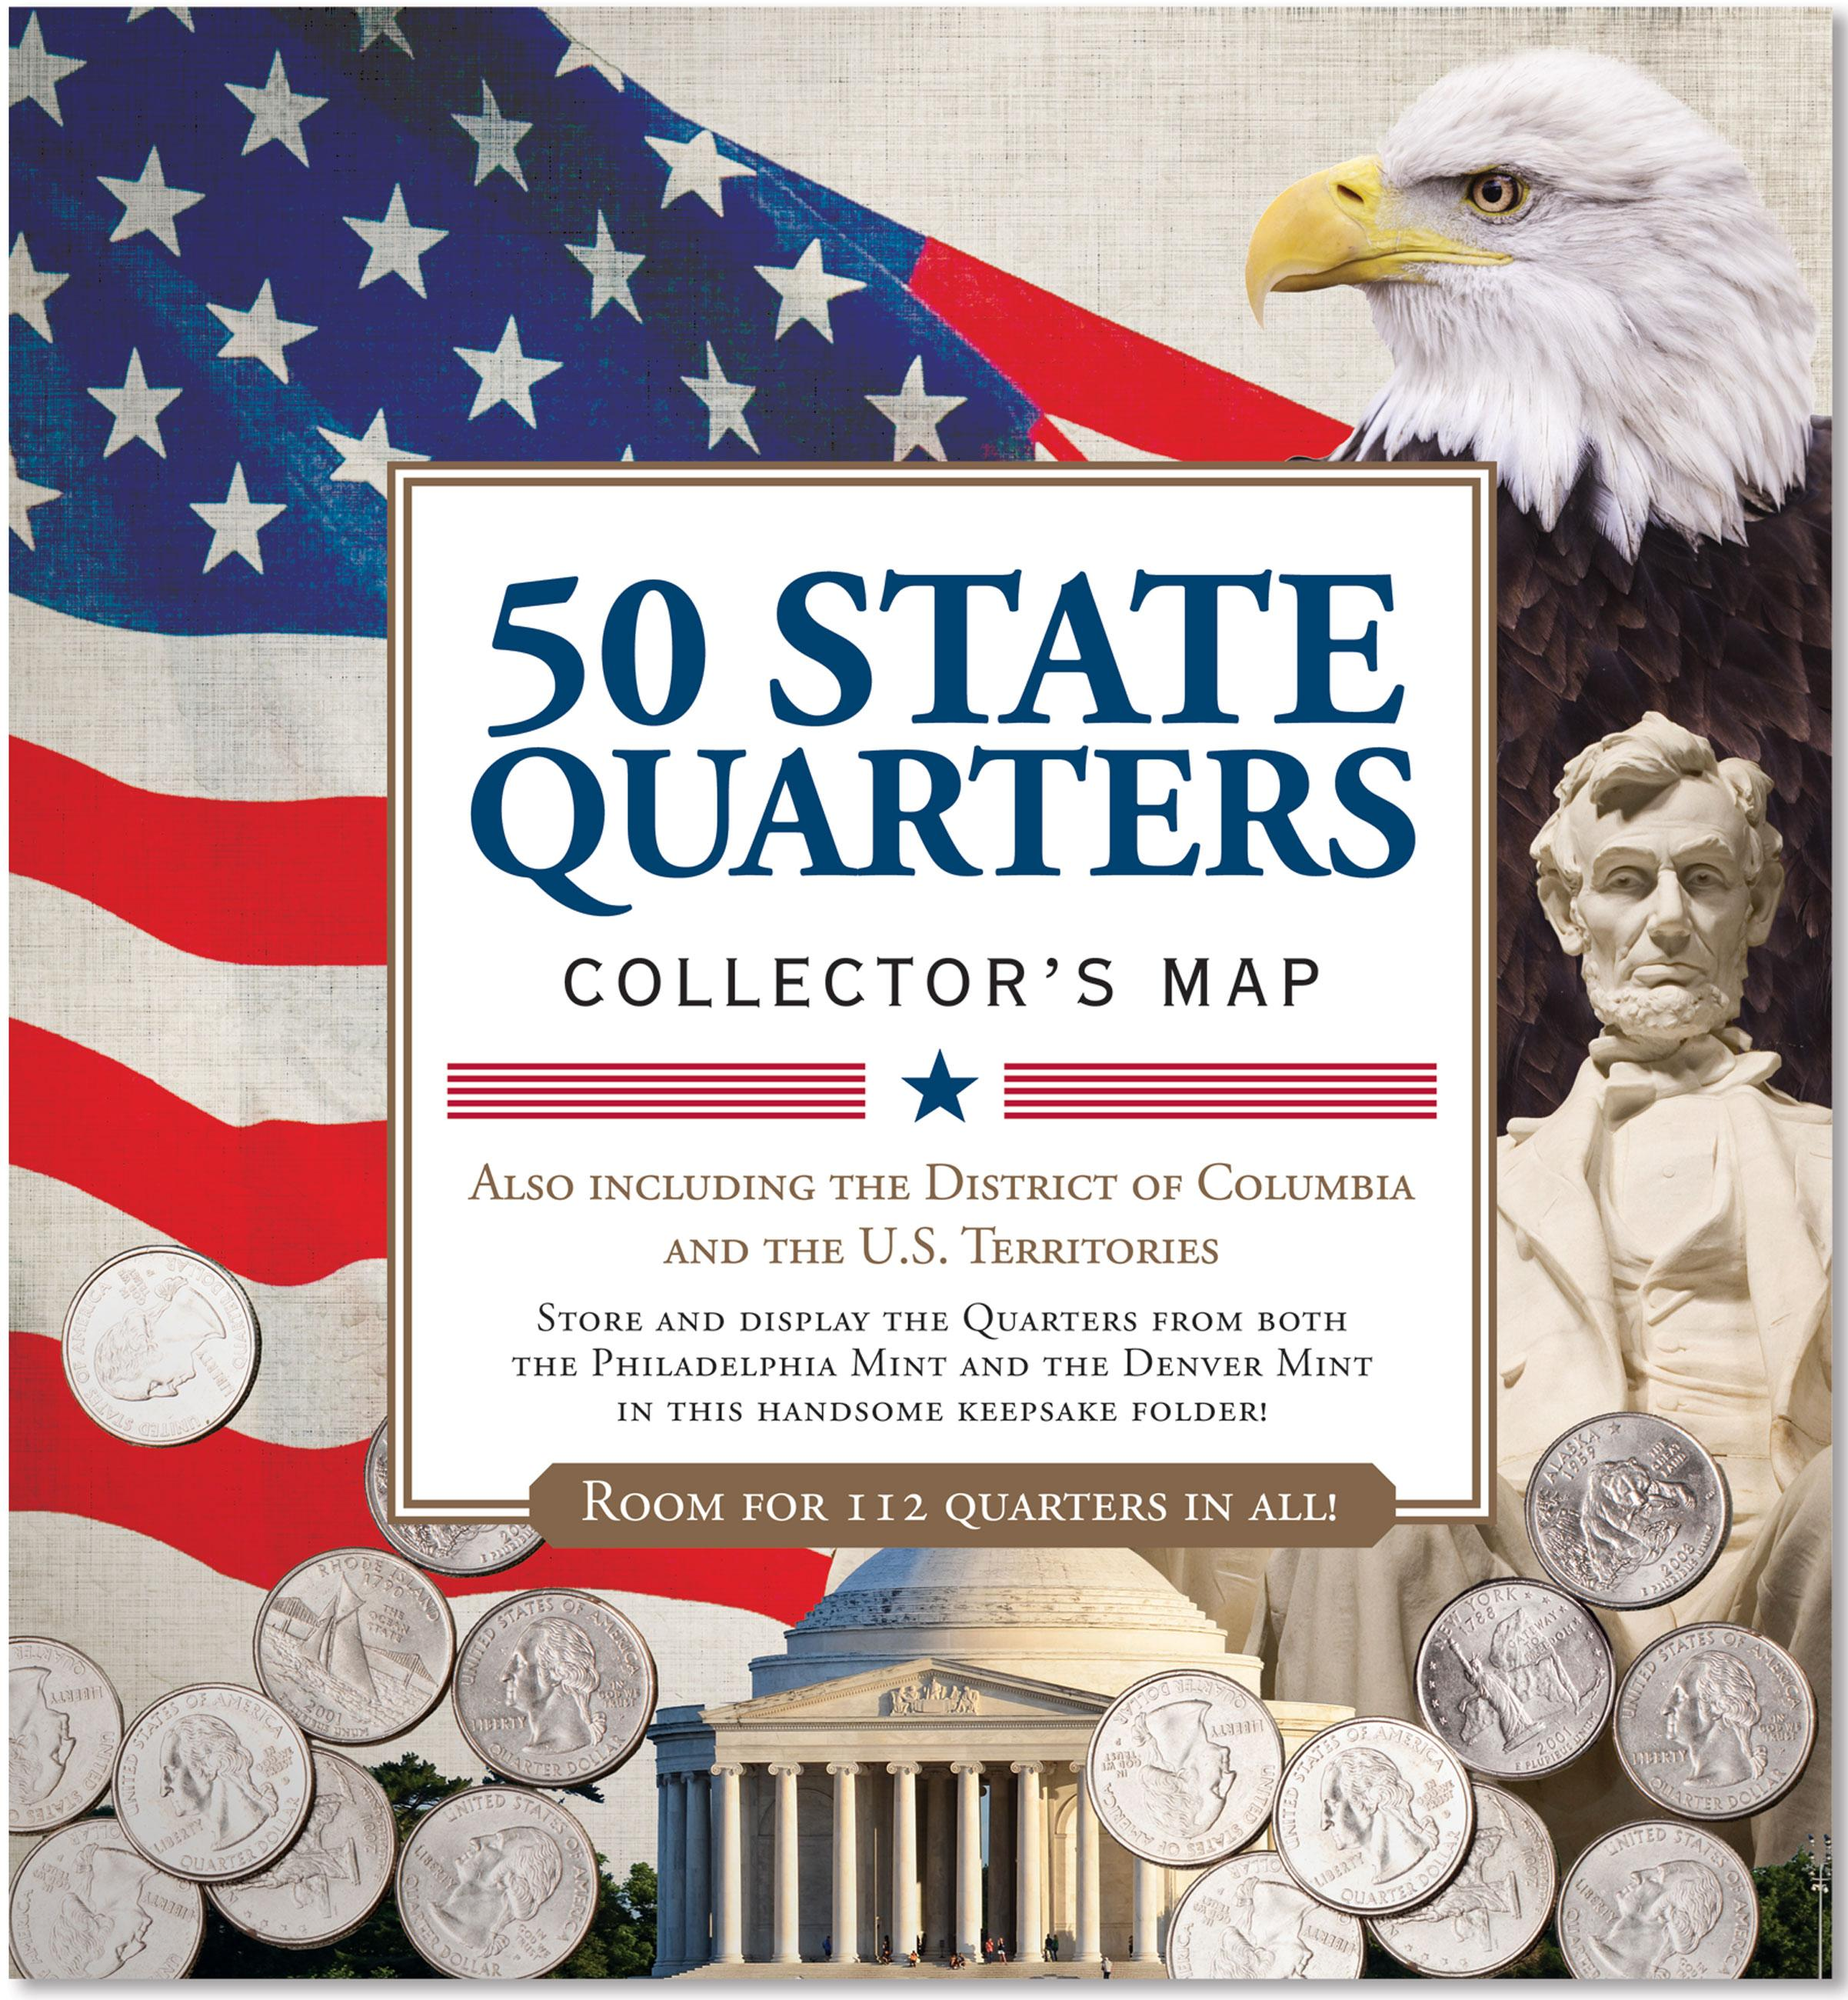 50 State Quarters Collectors Map Including the District of